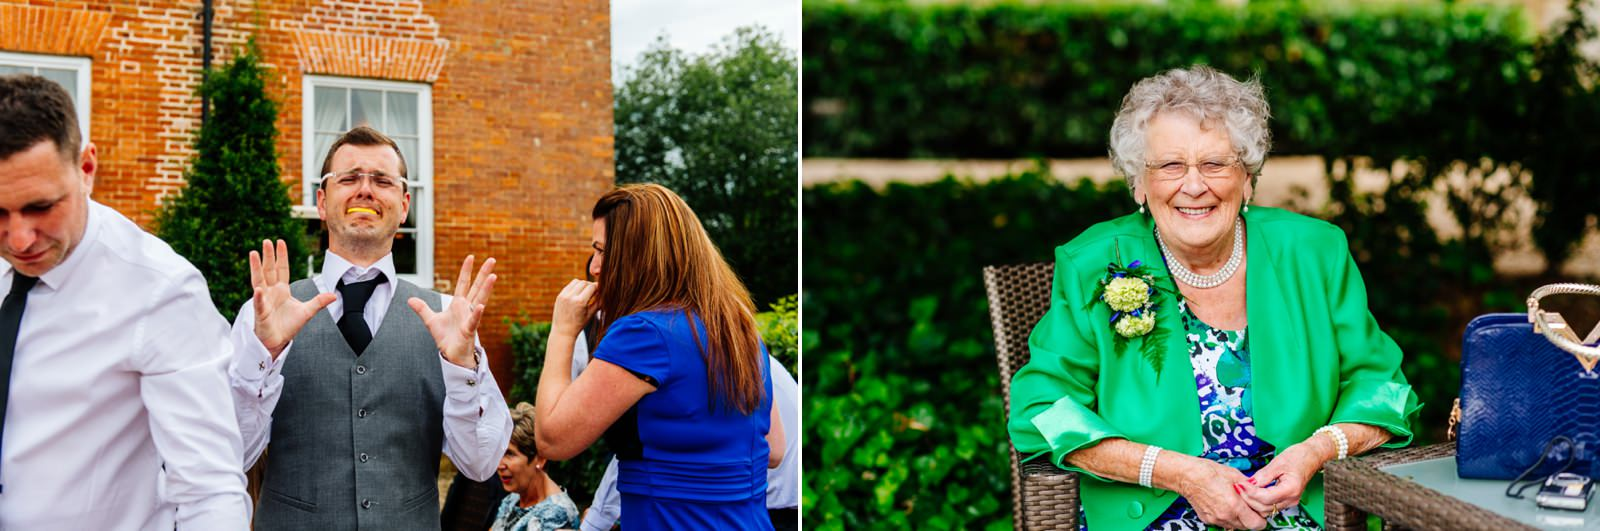 Fawsley Hall Wedding Photographer - Beth & Paul_0015